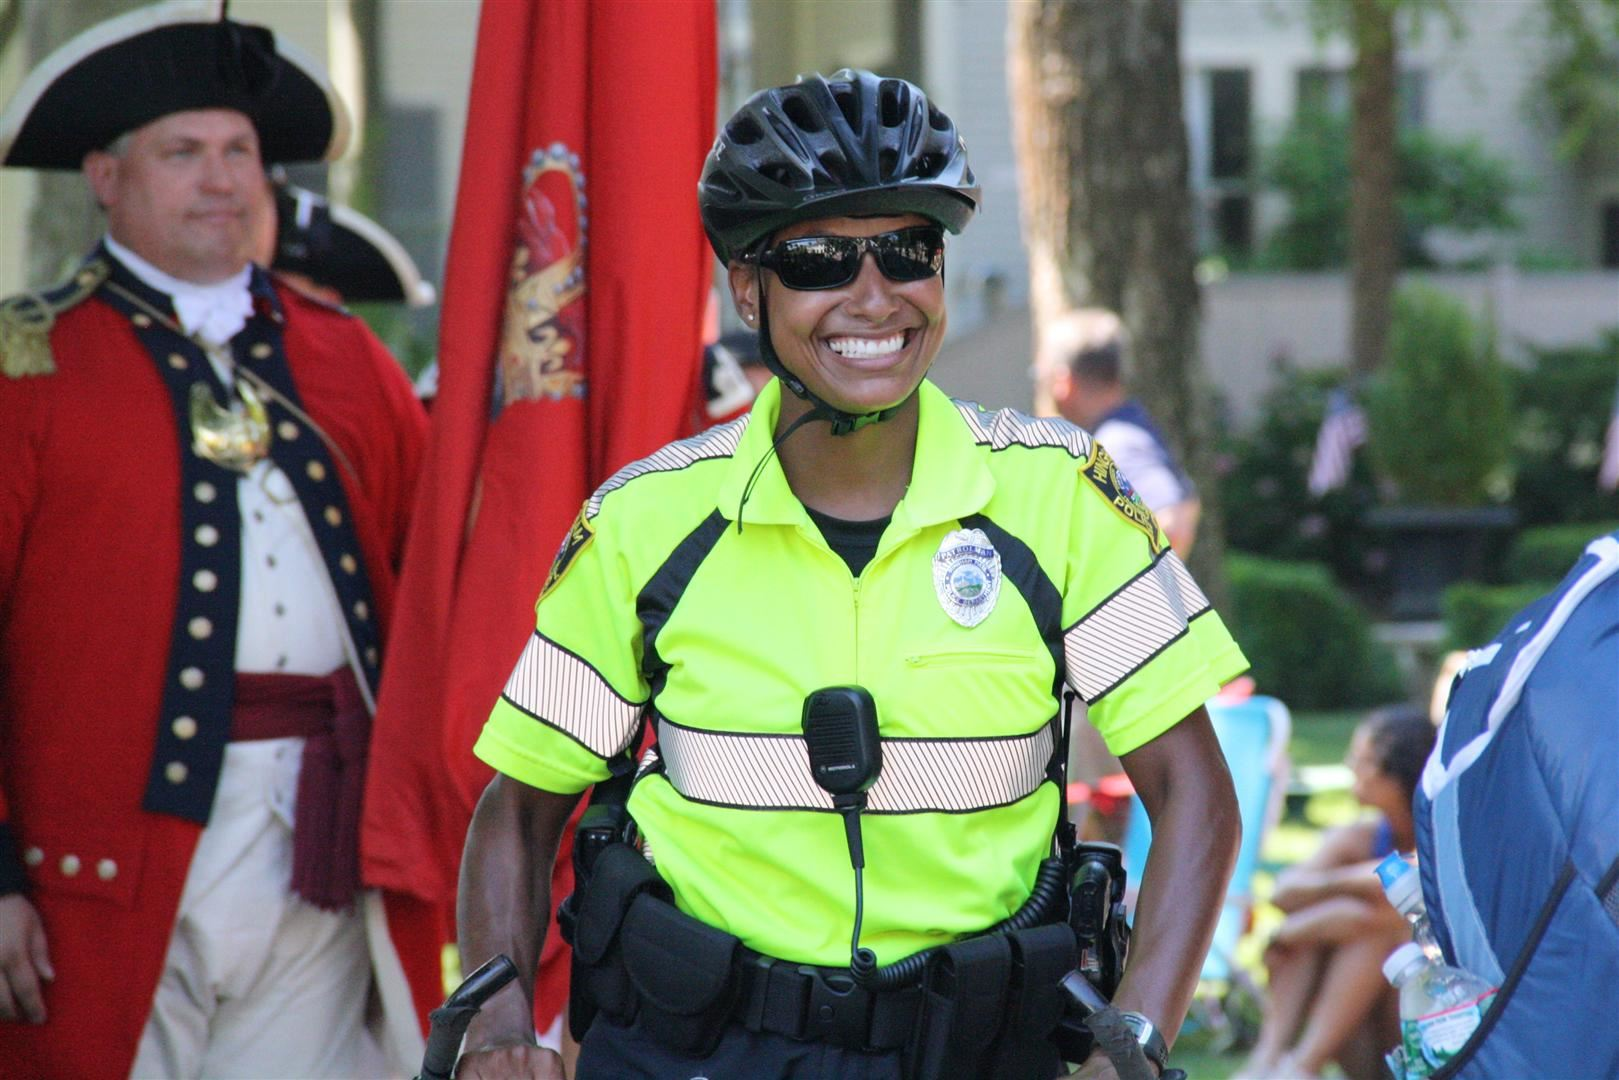 Hingham Police Officer